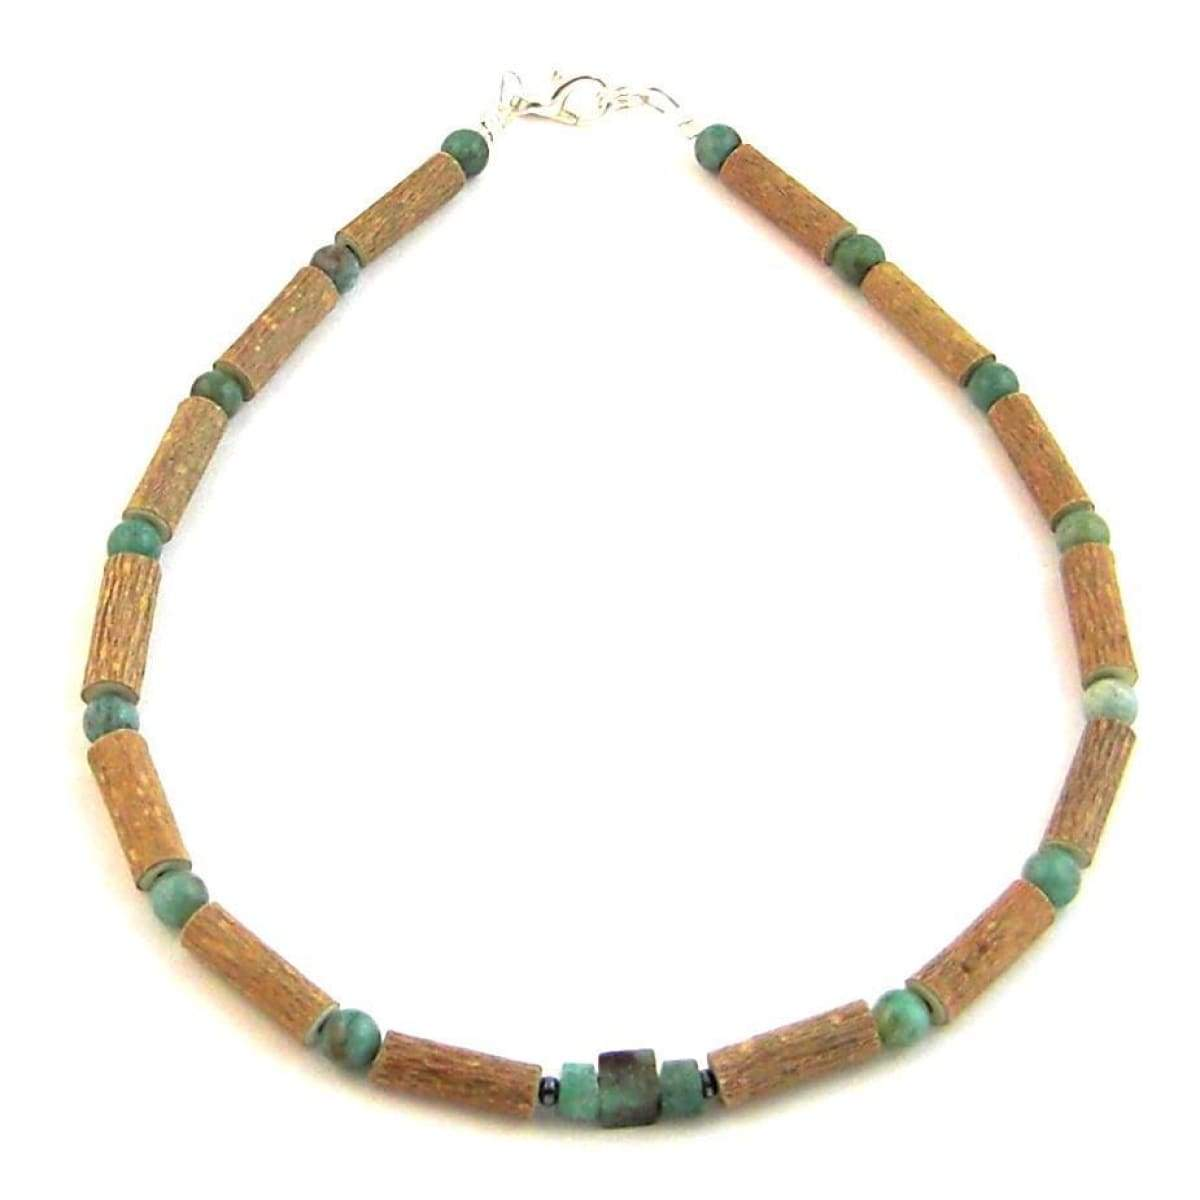 Hazel-Gemstone African Jade - 11 Necklace - Lobster Claw Clasp - Hazelwood & Gemstone Jewelry